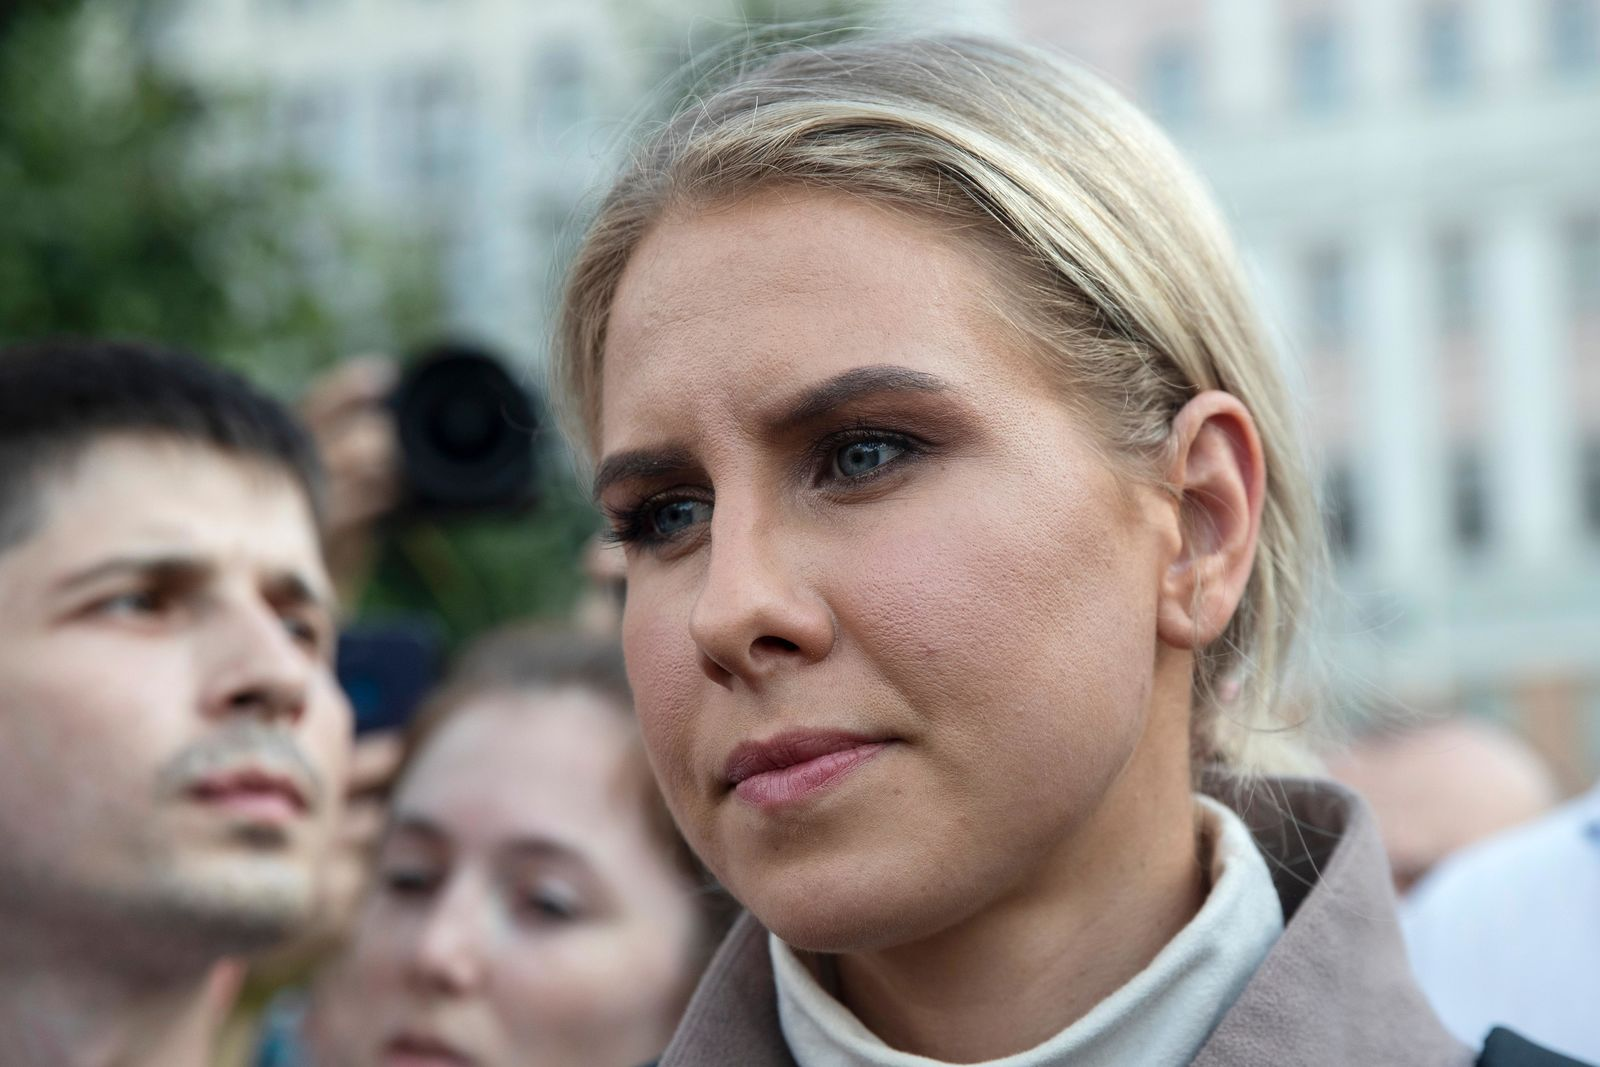 Russian opposition activist Lyubov Sobol attends a protest march in Moscow, Russia, Saturday, Aug. 31, 2019. (AP Photo/Pavel Golovkin)